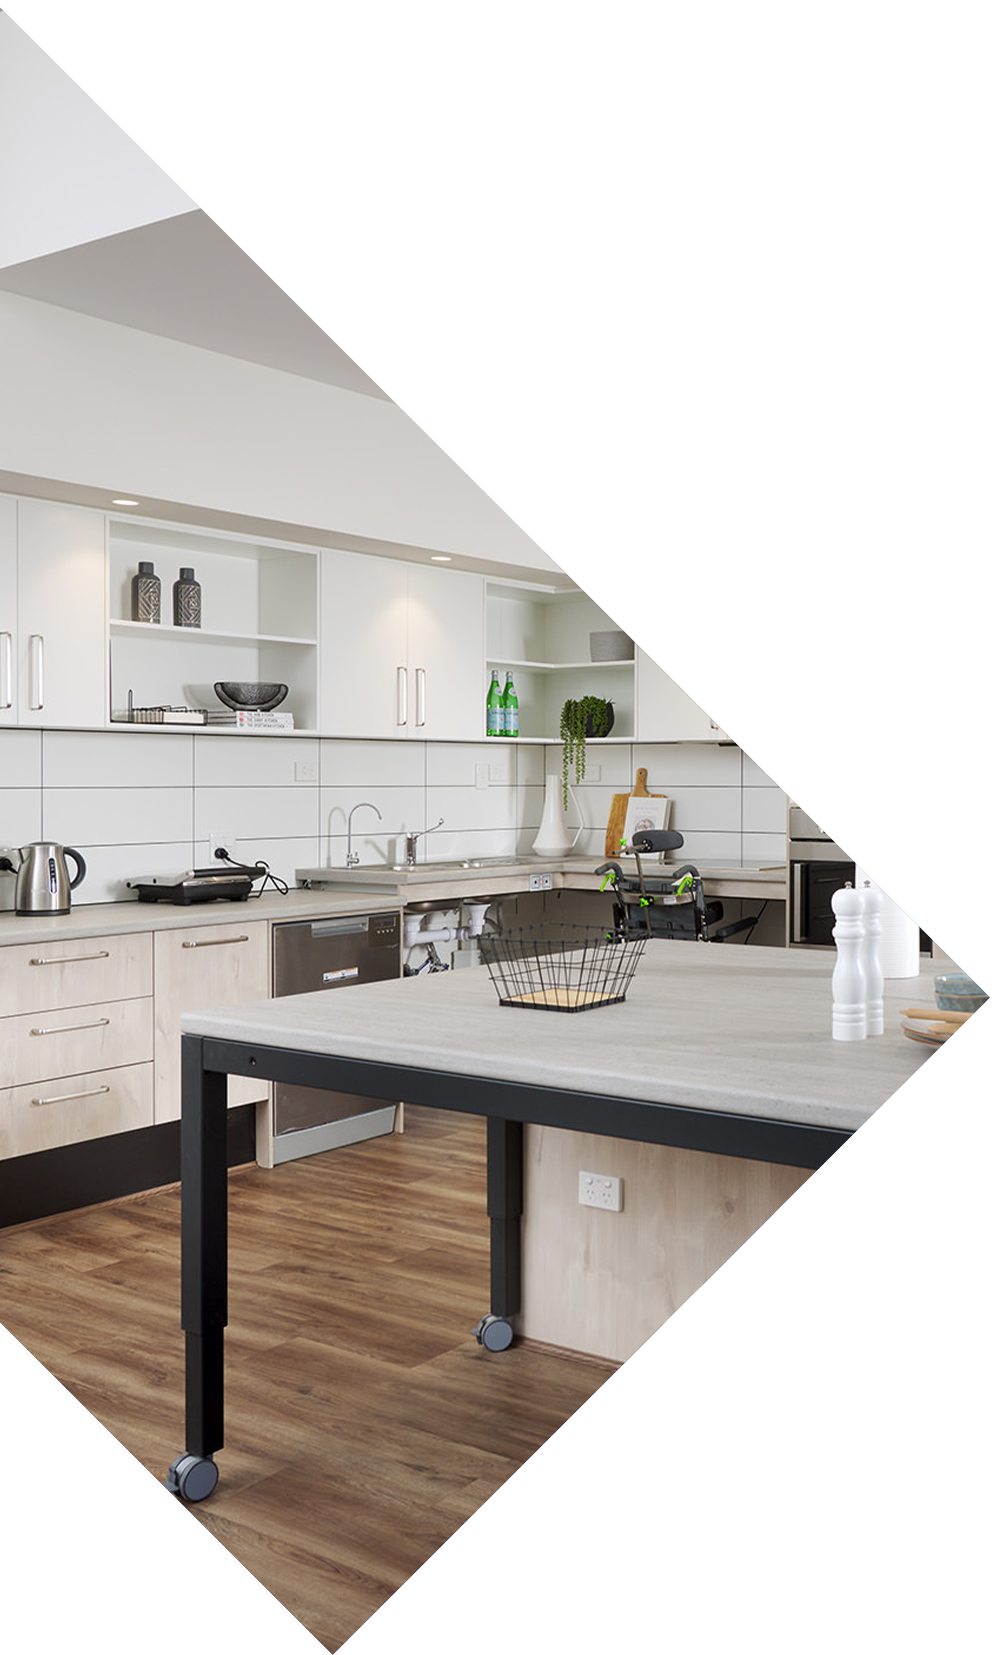 A stylish SDA approved kitchen appointed with custom features and wooden floors.